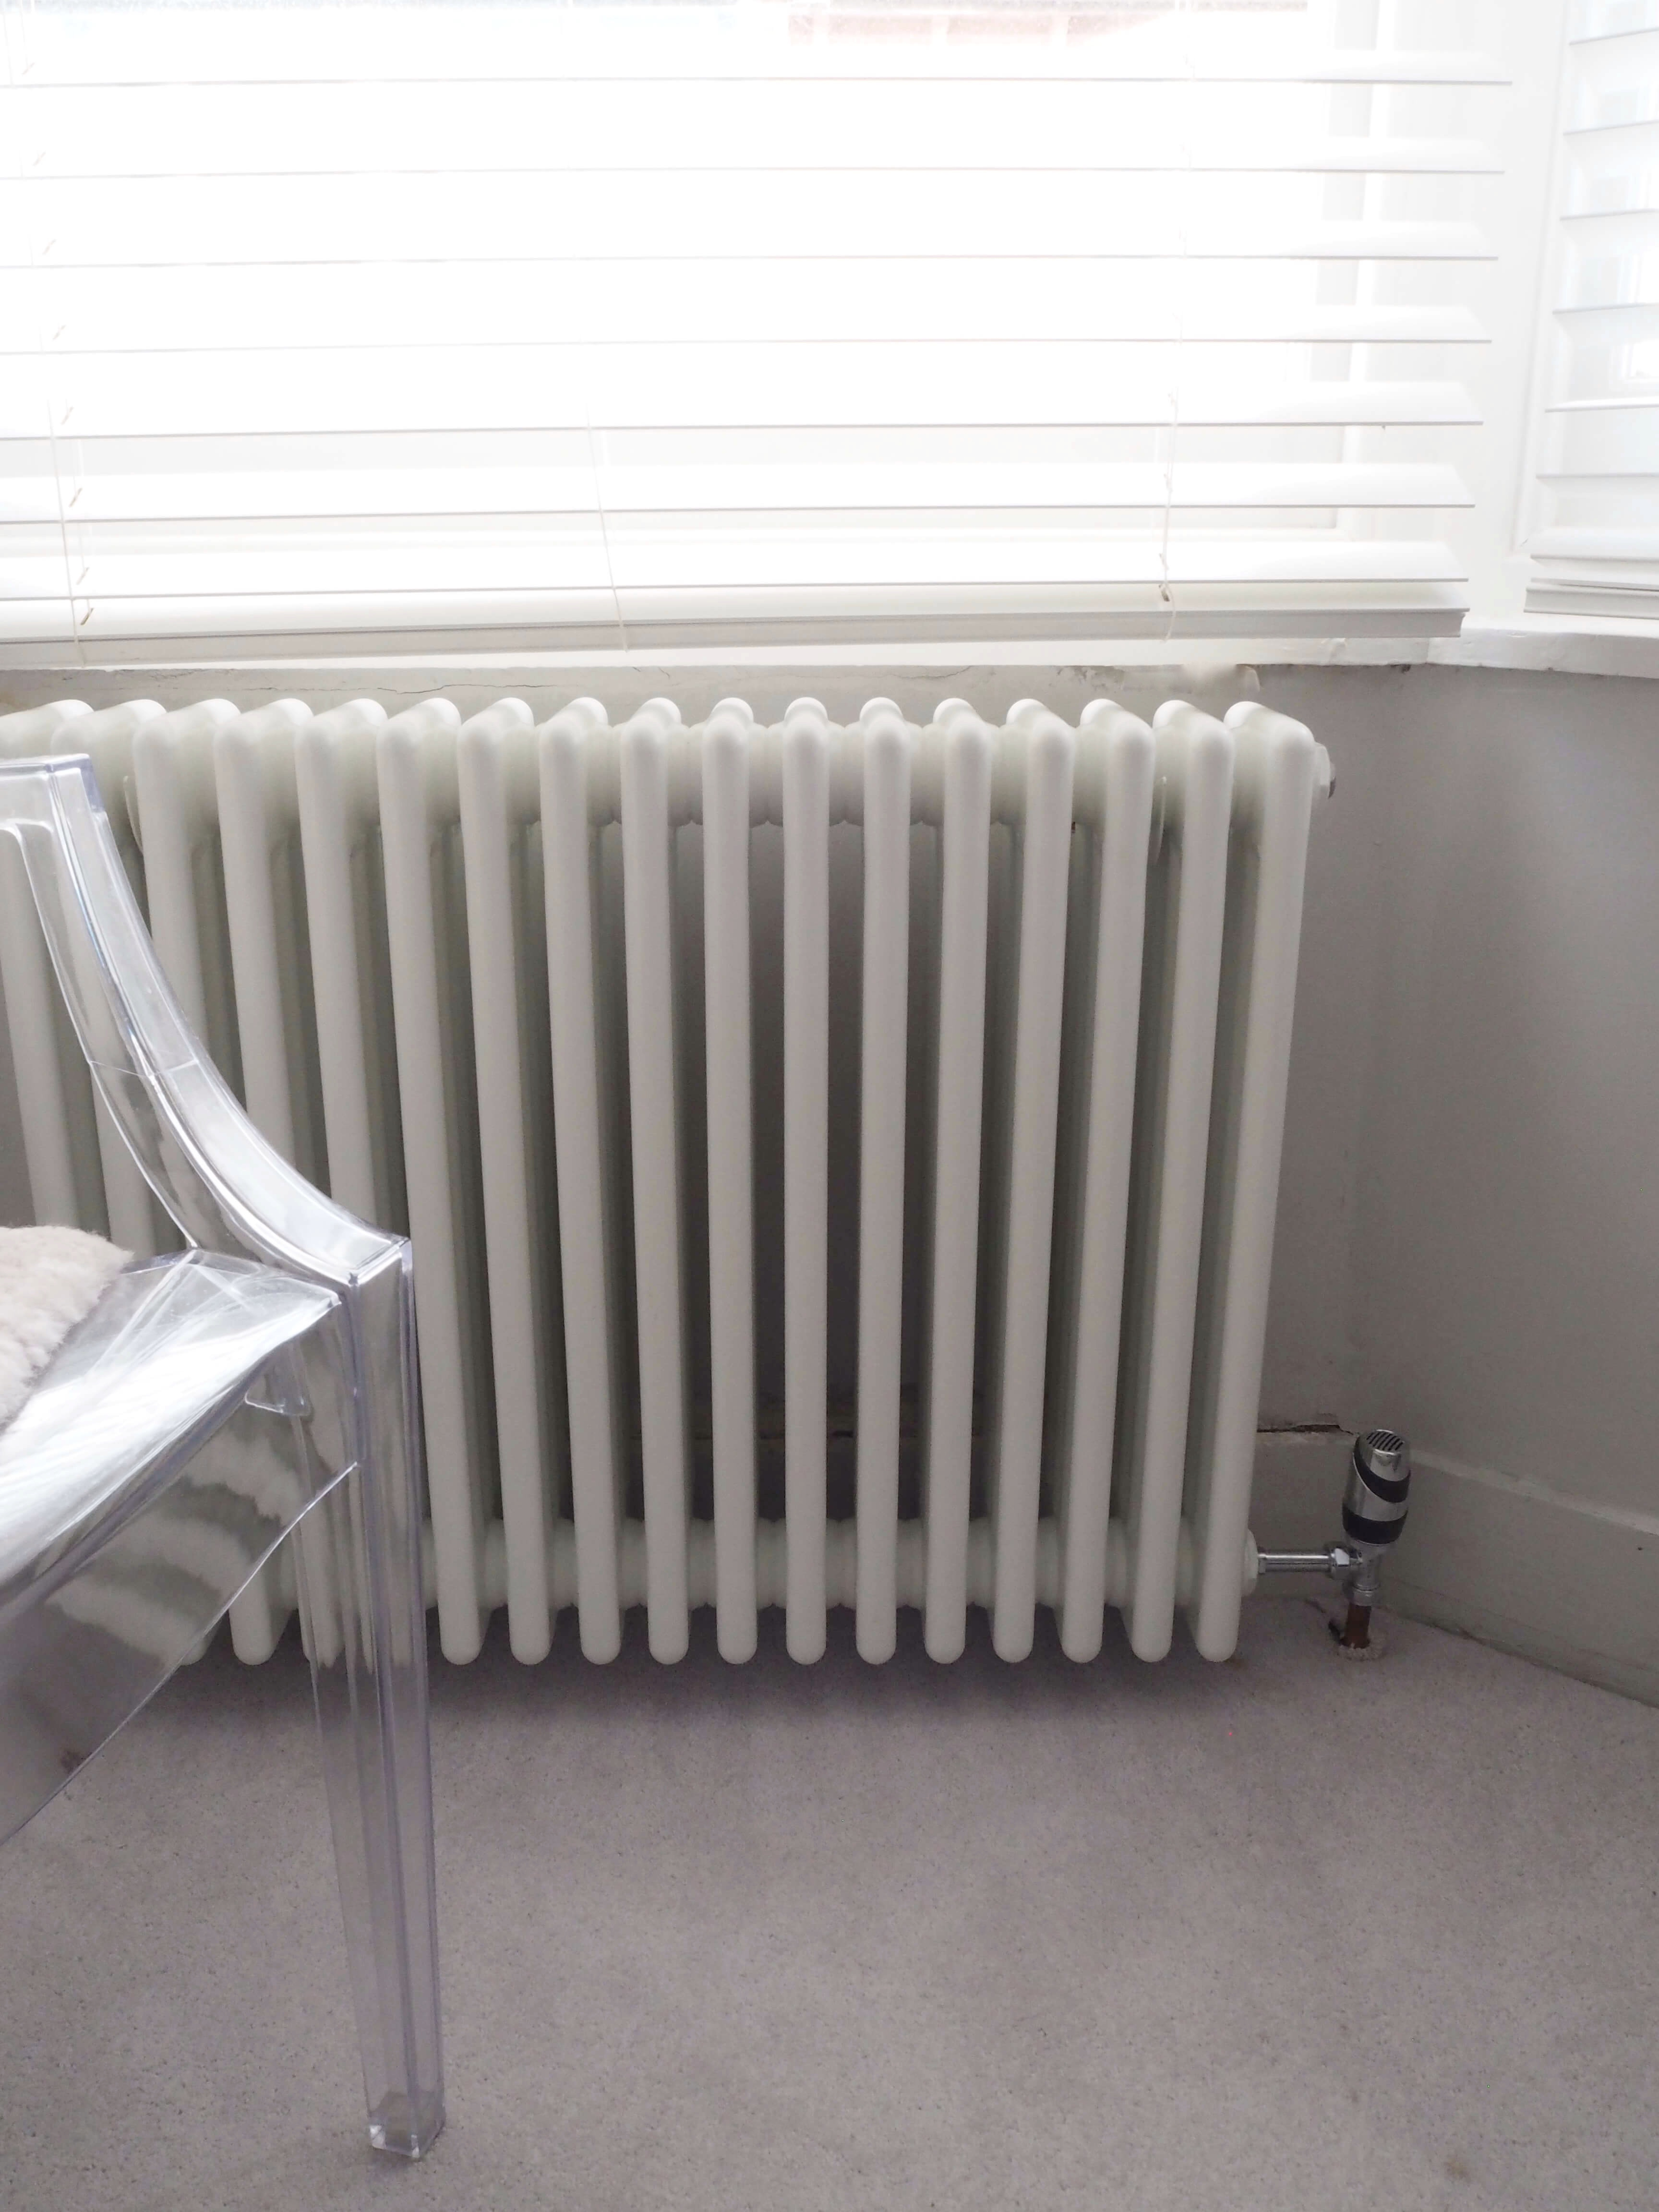 Planning a central heating update? Discover how important BTUs are when picking the right radiator for your home by Homes blogger Maxine Brady